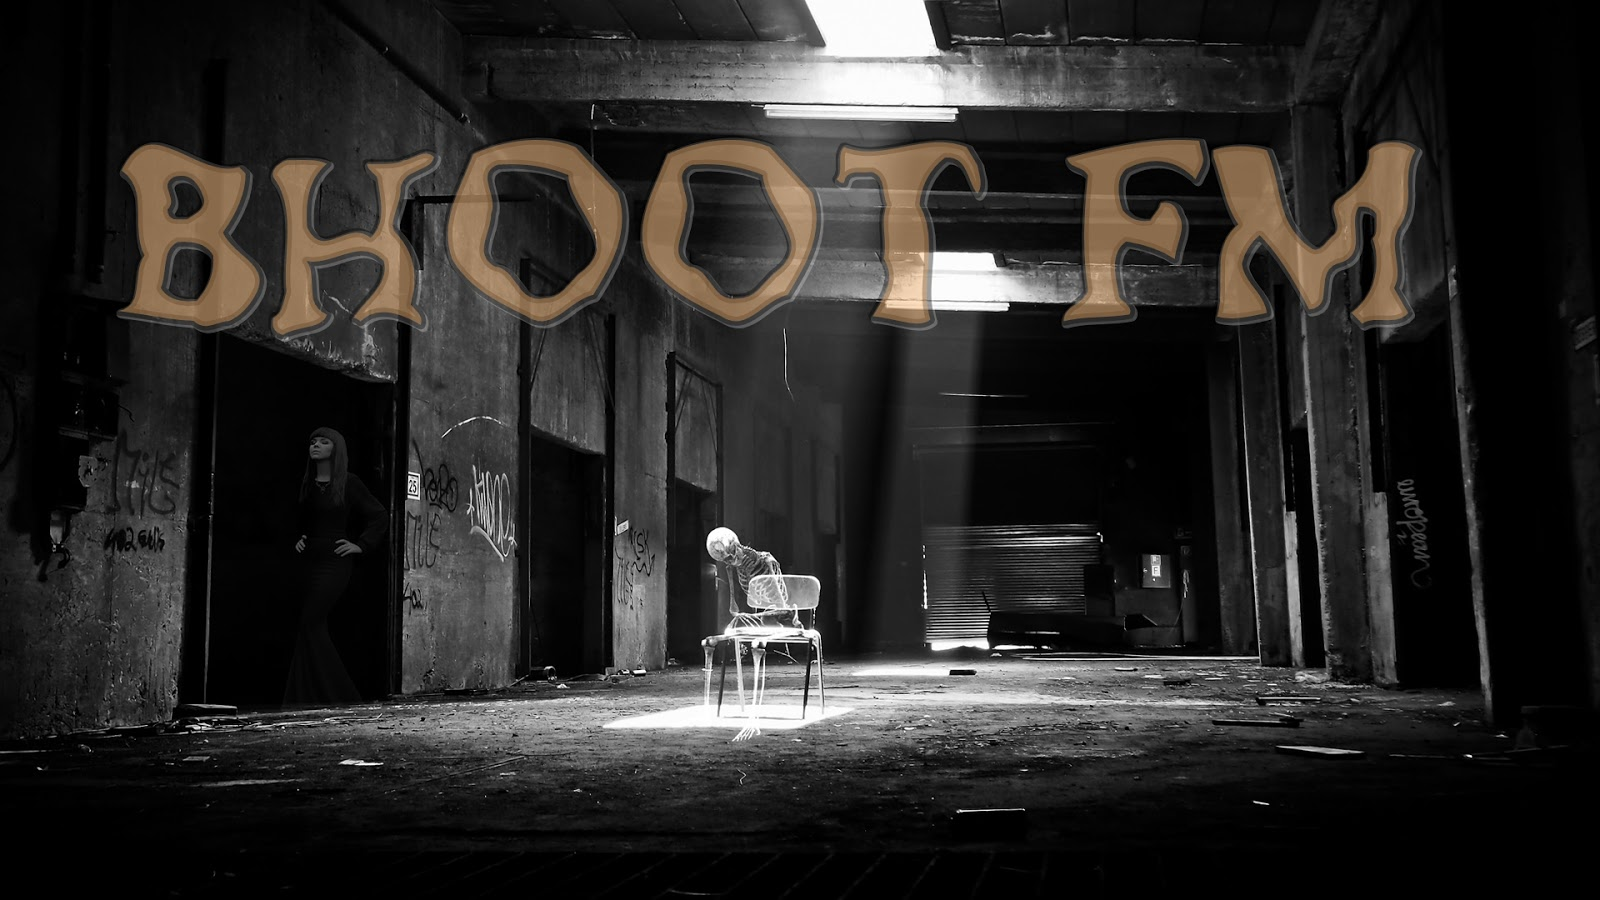 bhoot fm download recorded episode